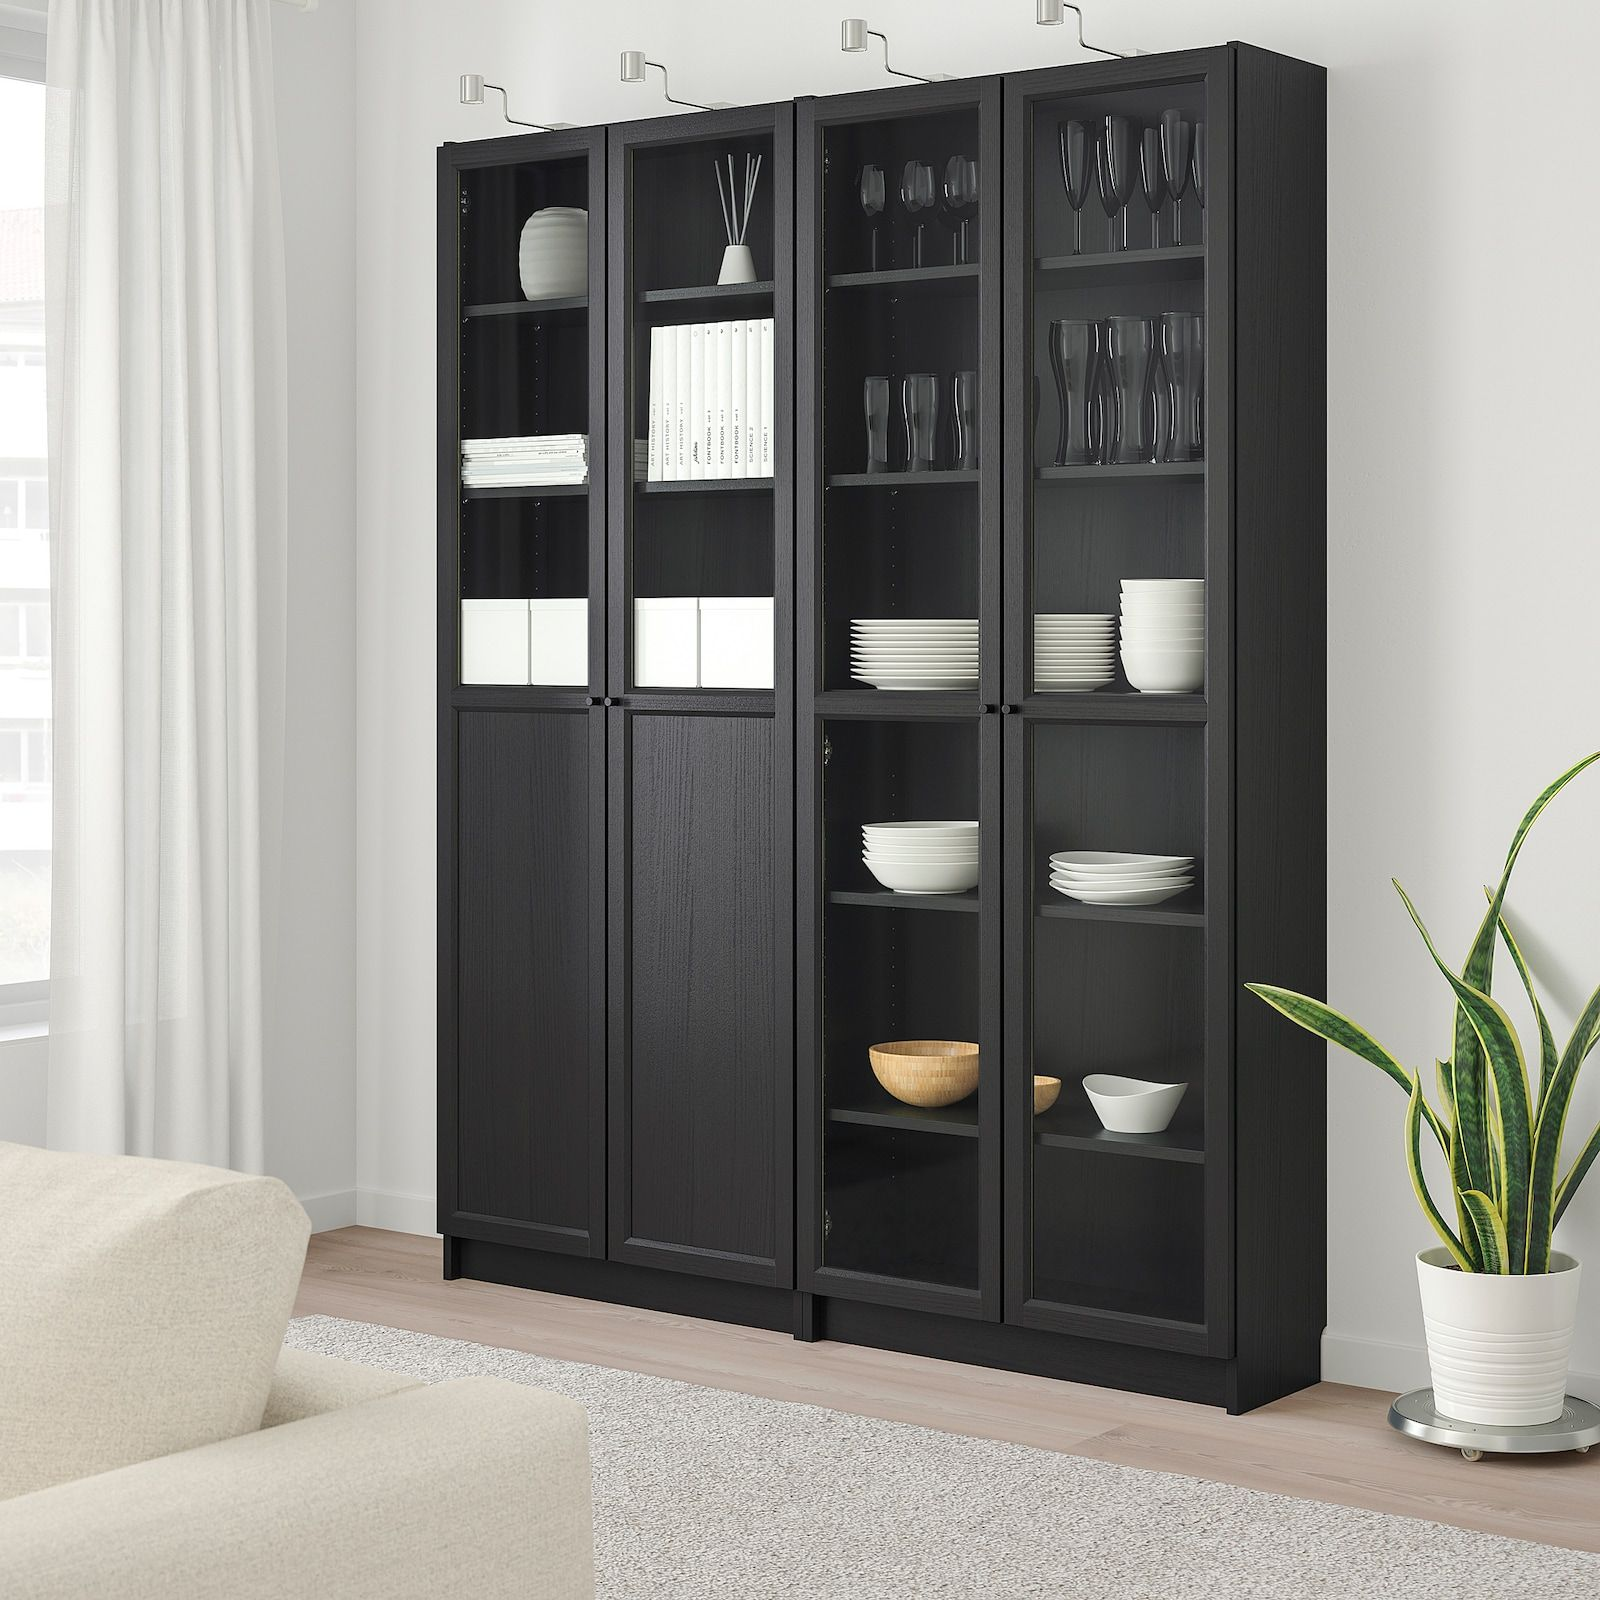 Billy Oxberg Black Brown Glass Bookcase With Panel Glass Doors 160x30x202 Cm Ikea Glass Bookcase Glass Door Glass Cabinet Doors Black bookcase with glass doors